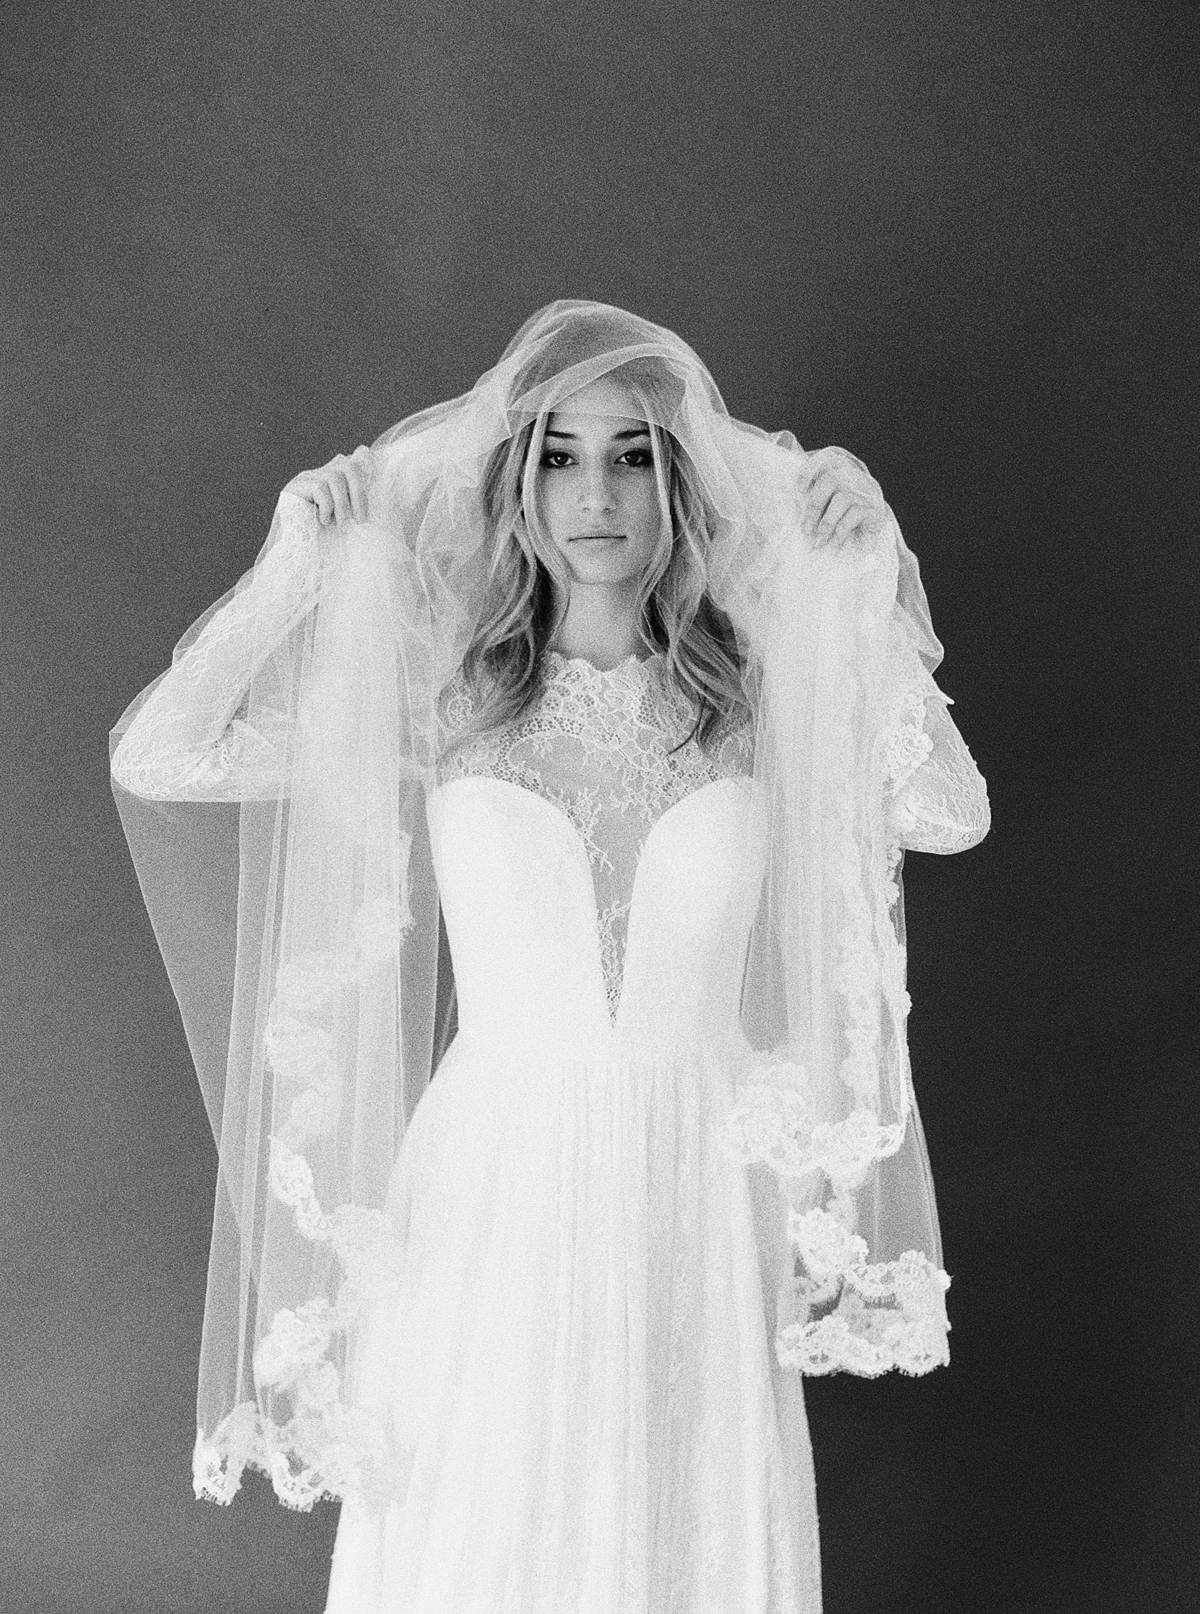 studio bridal portrait in charleston sc by brian d smith photography on ilford delta 3200 medium format film with lace veil overhead